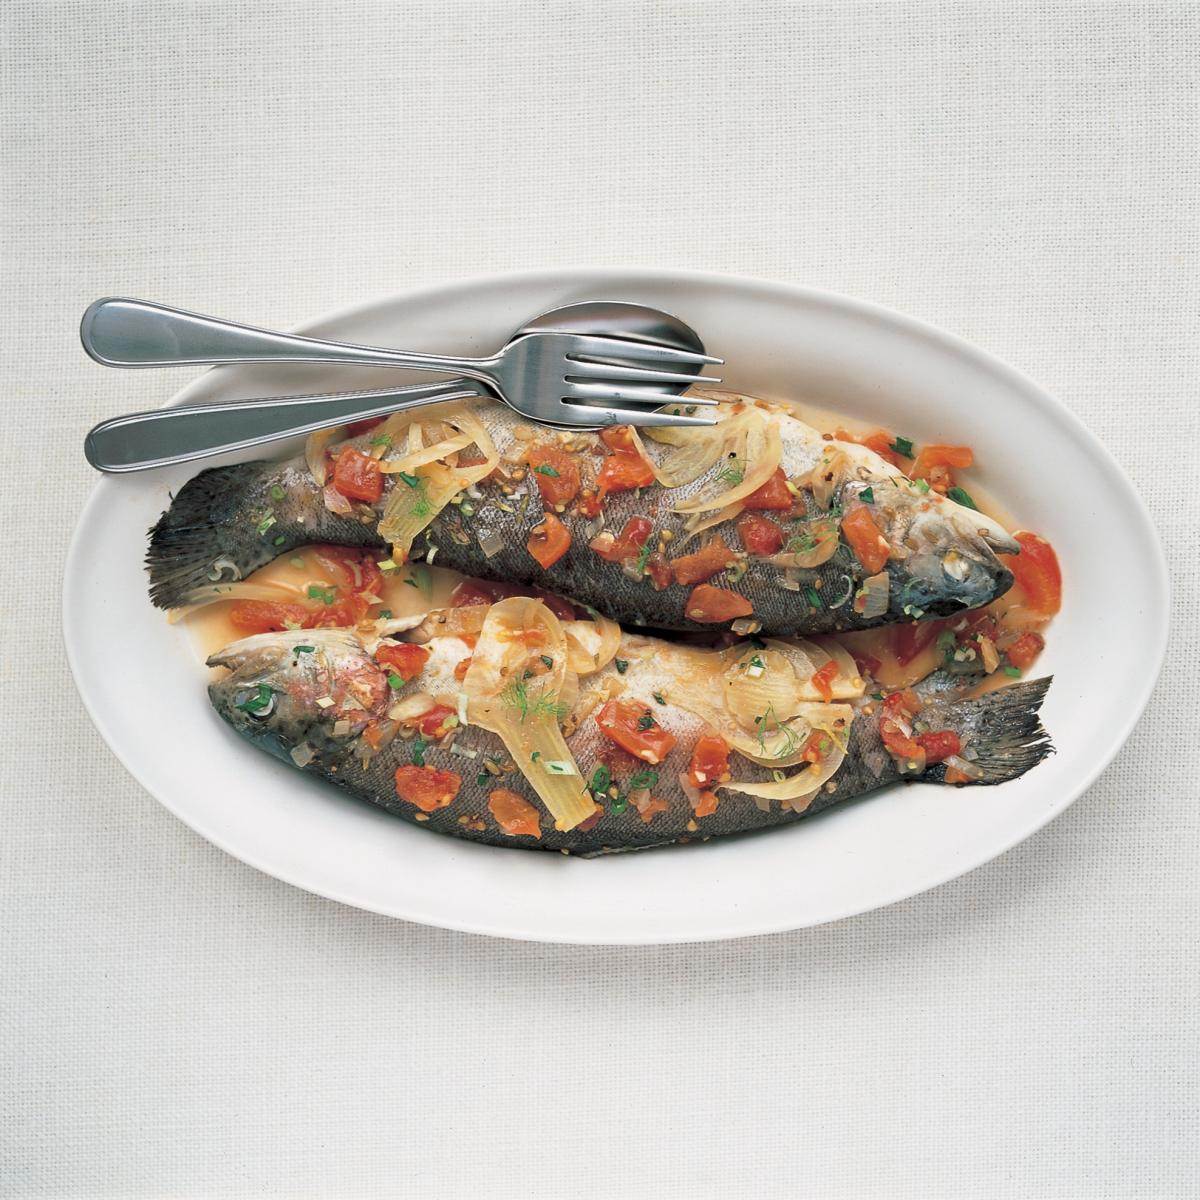 A picture of Delia's Fish without fear how to cook guide